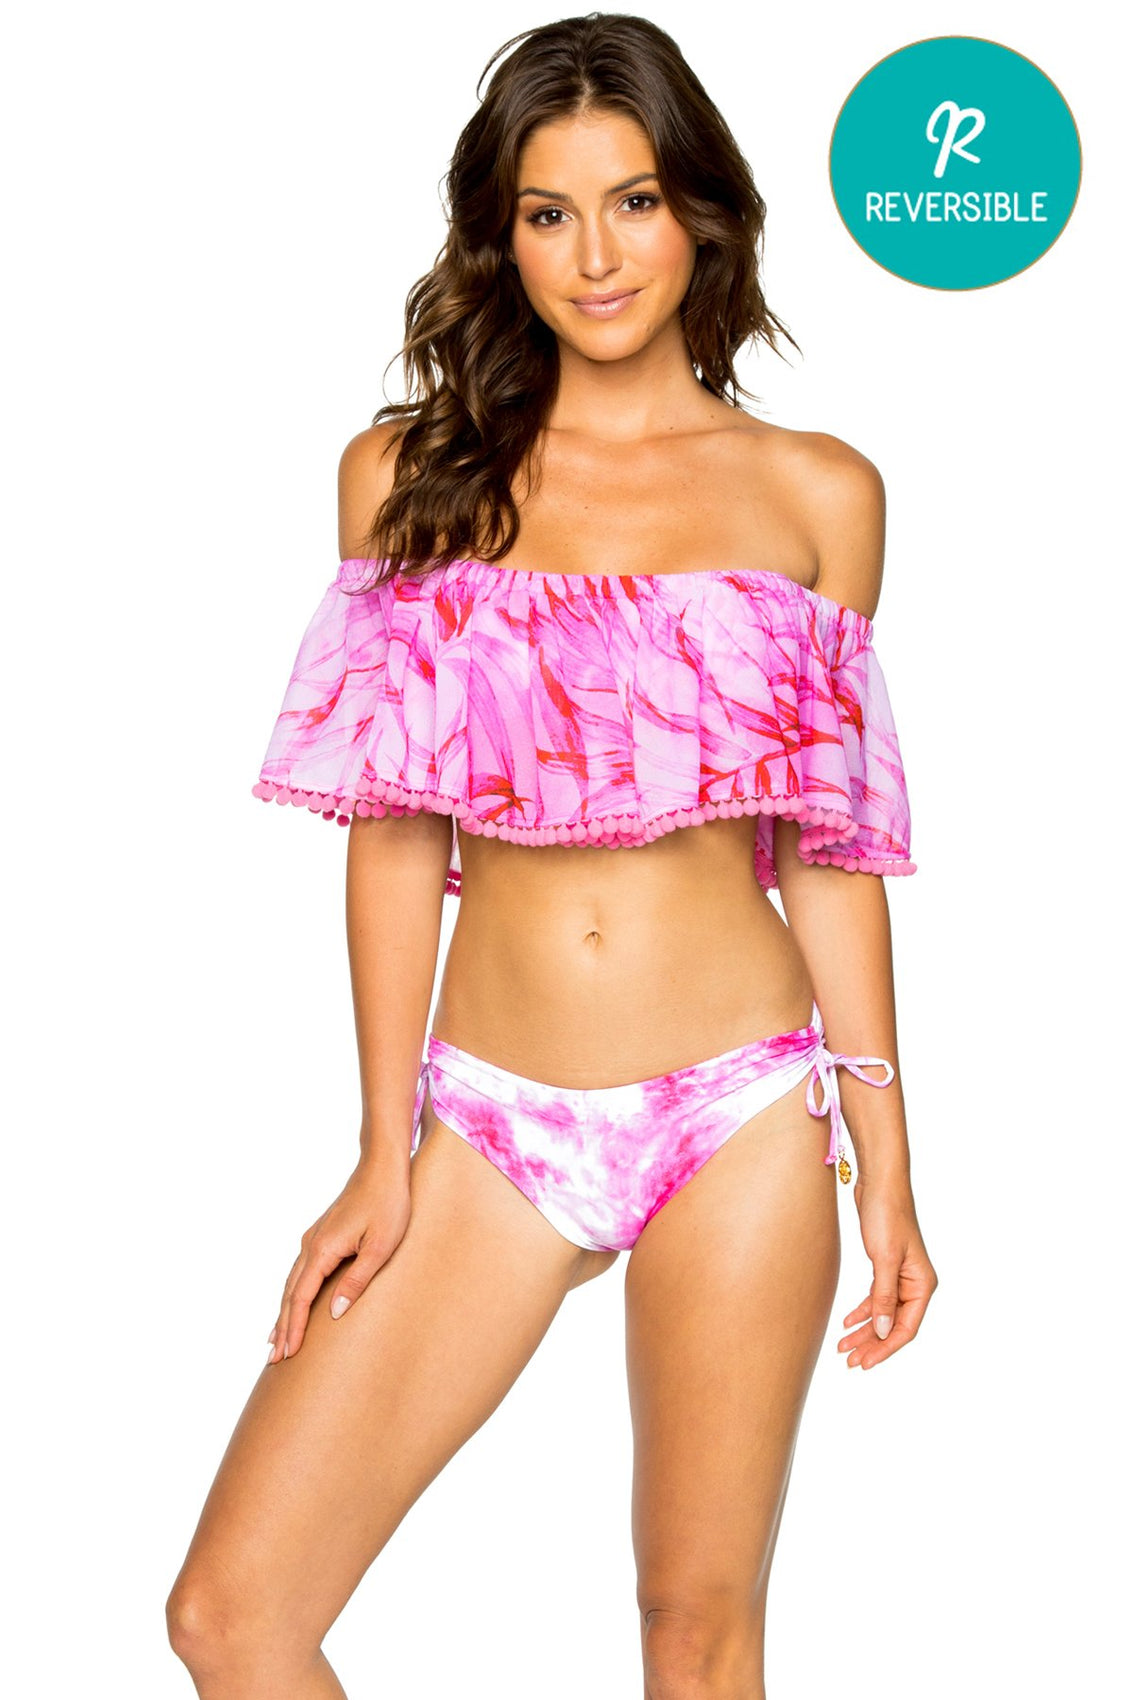 BAMBOLEO - Rosario Top & Drawstring Side Moderate Bottom • Fuchsia